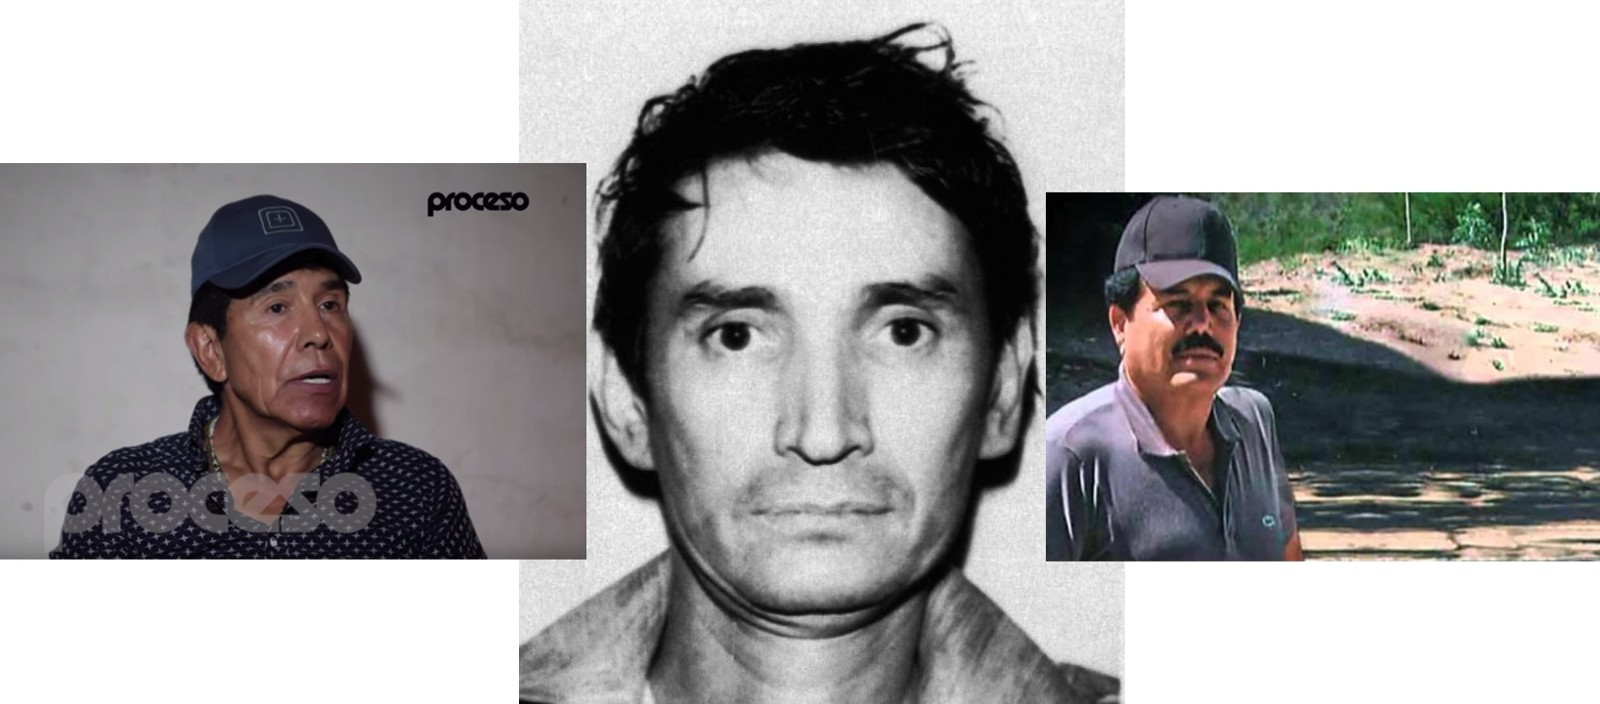 ismael el mayo zambada net worth and associate drug lords